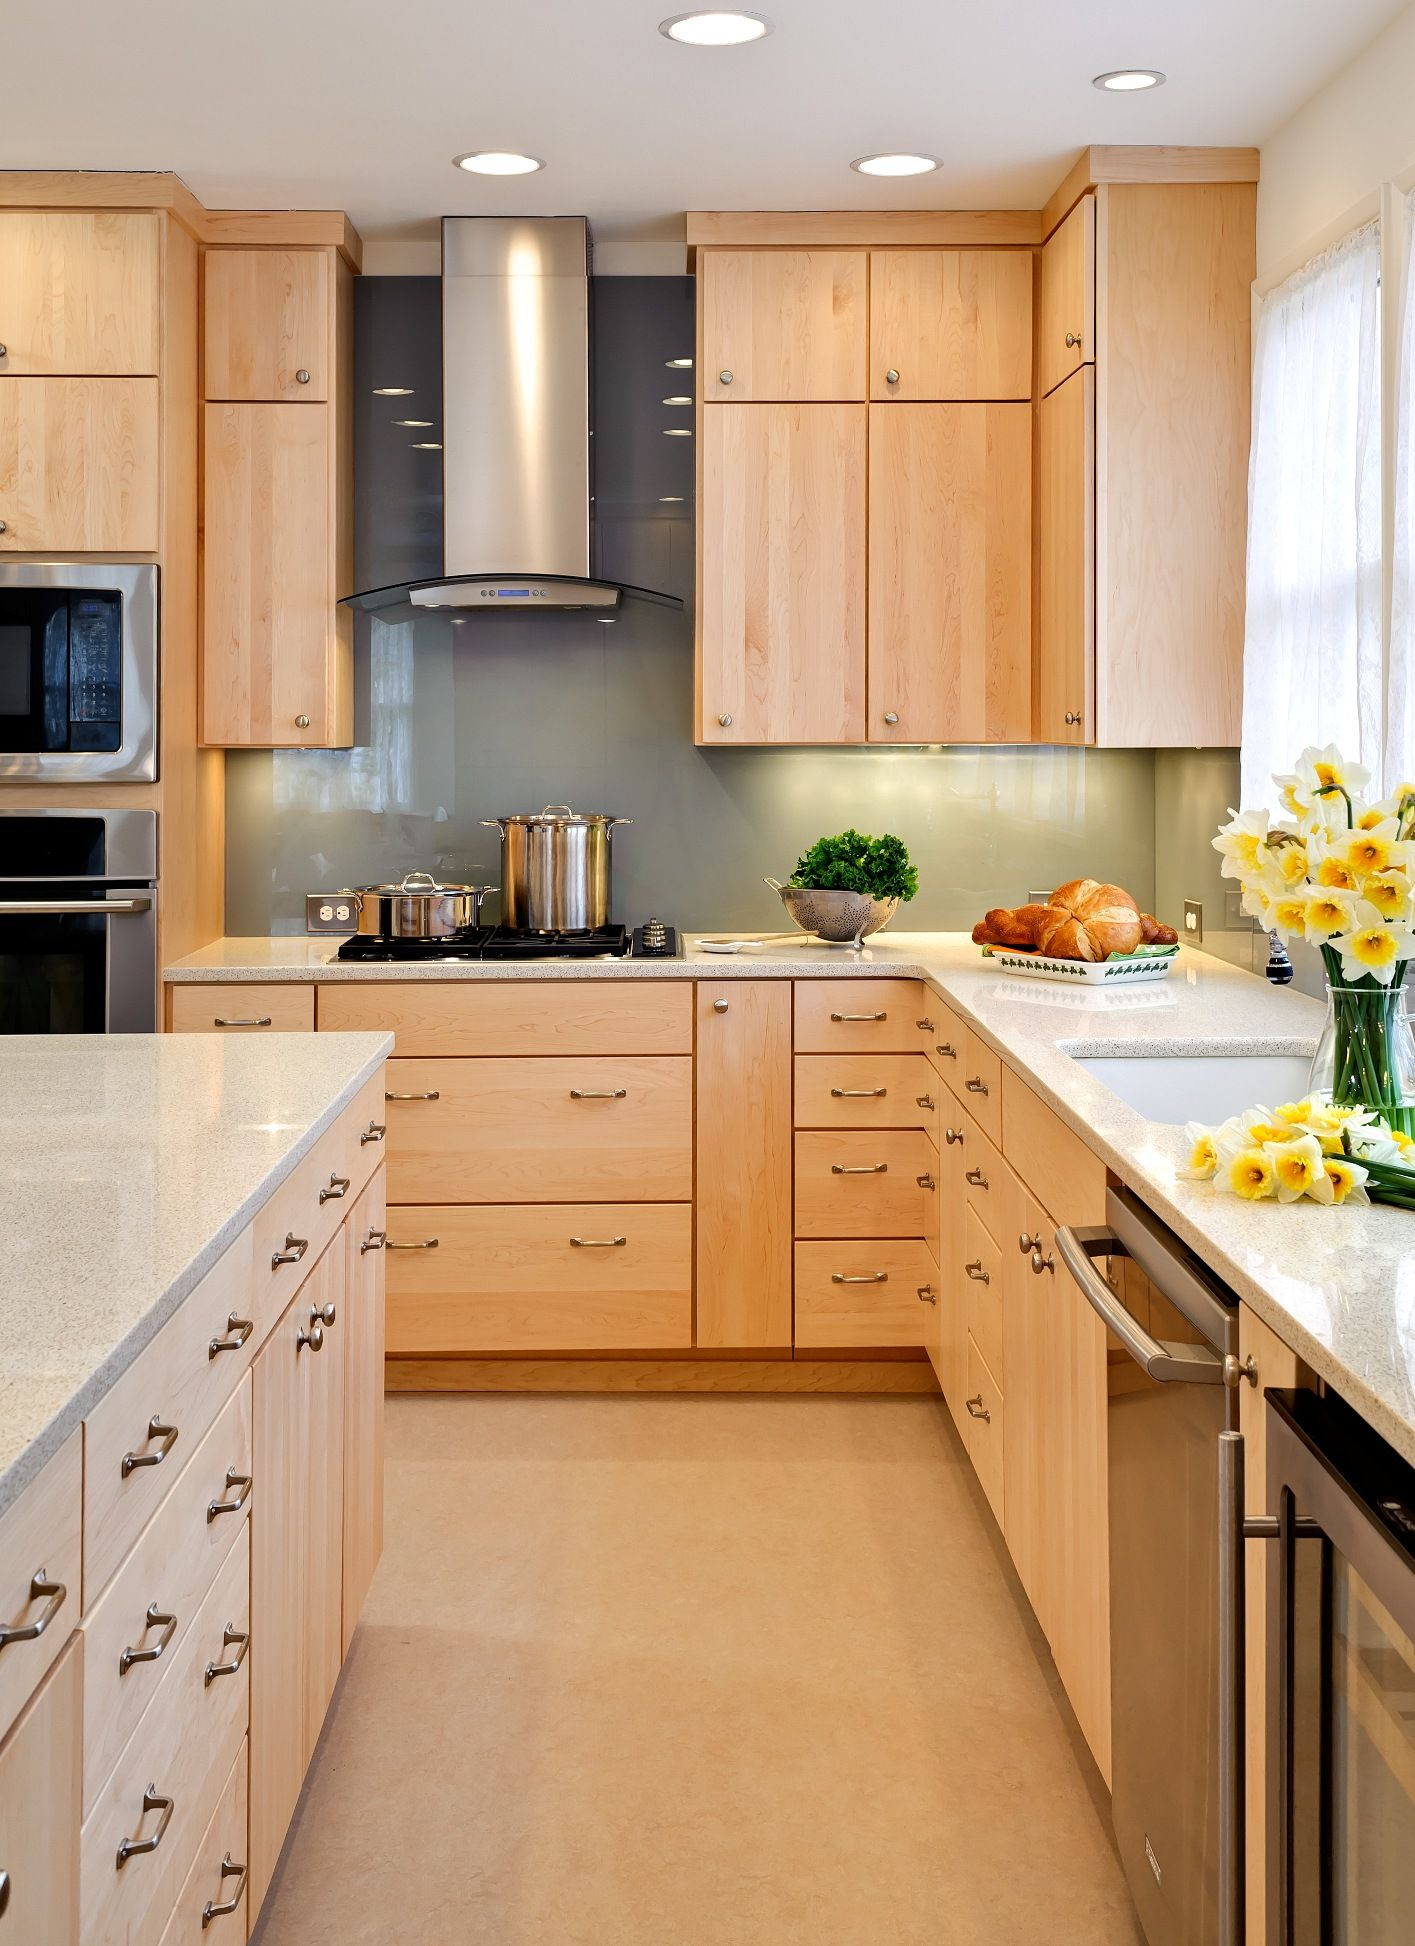 kitchen cabinet countertop Kitchen Kitchen Oak Kitchen Cabinet Stainless Steel Wall Mounted Cabinet Gas Cooktop White Ceramic Countertop White Curtain White Kitchen Color Paint Beige